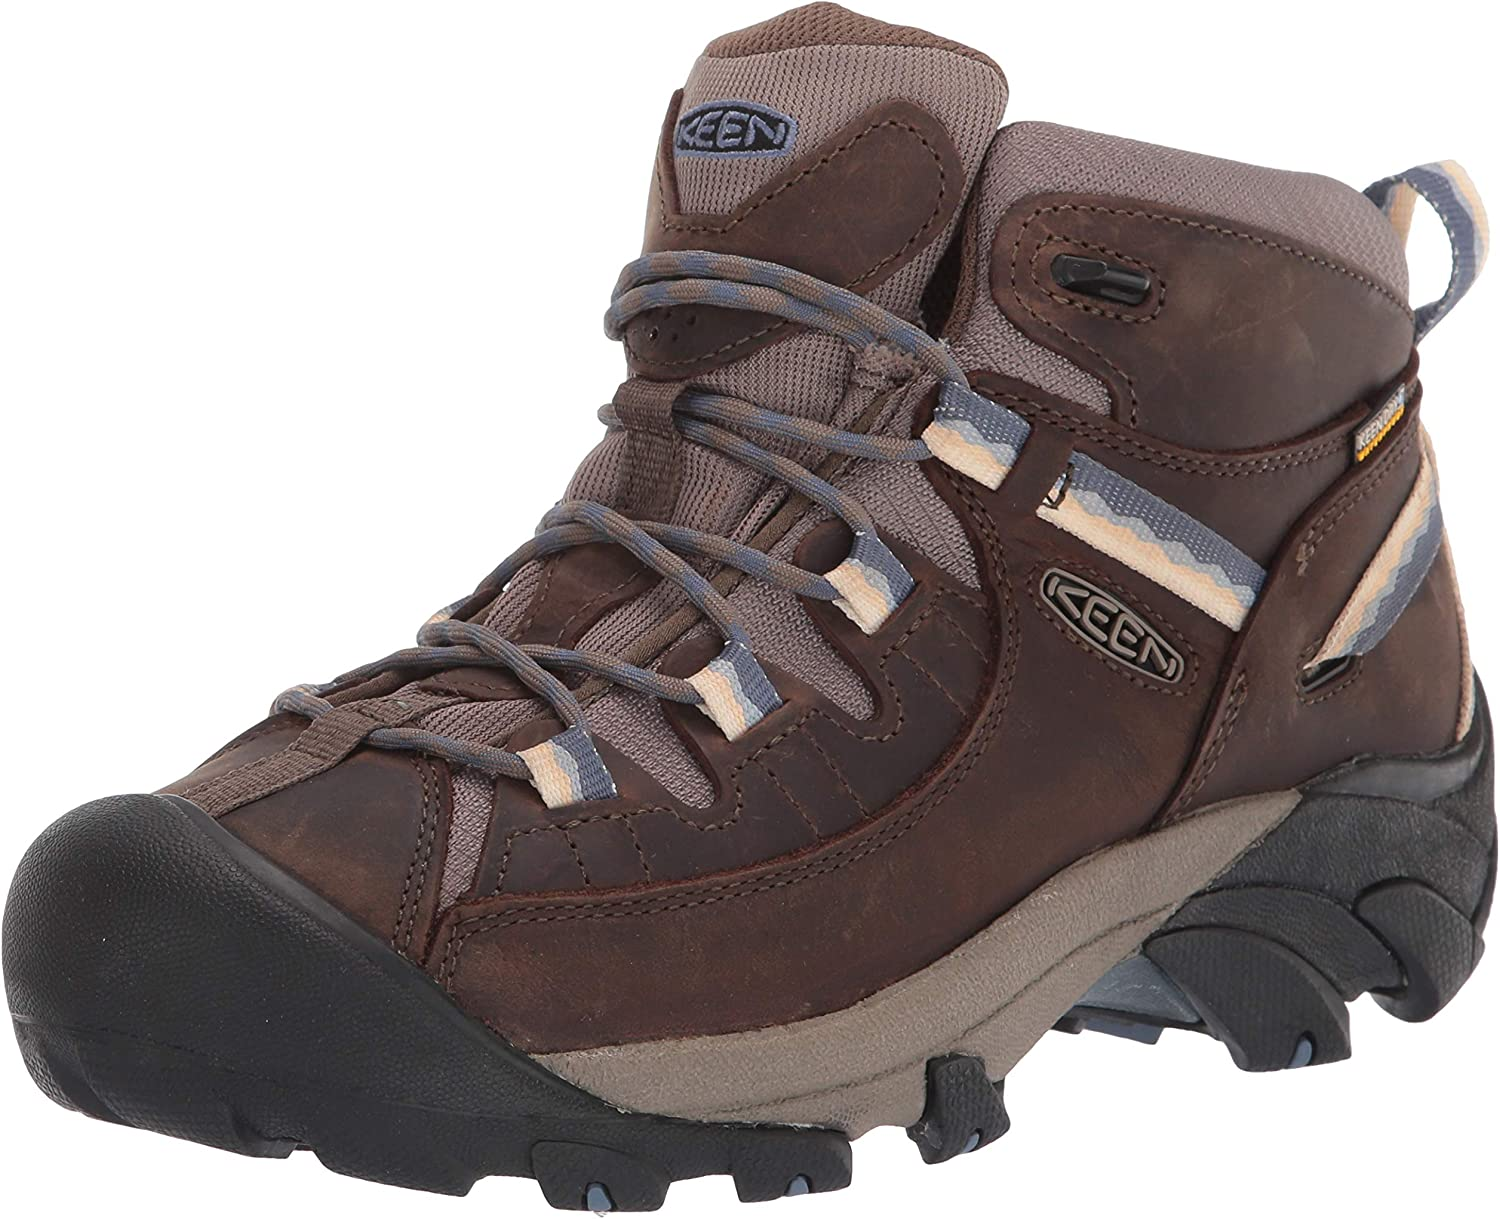 KEEN Women's Targhee 2 Mid Wp Hiking Boot